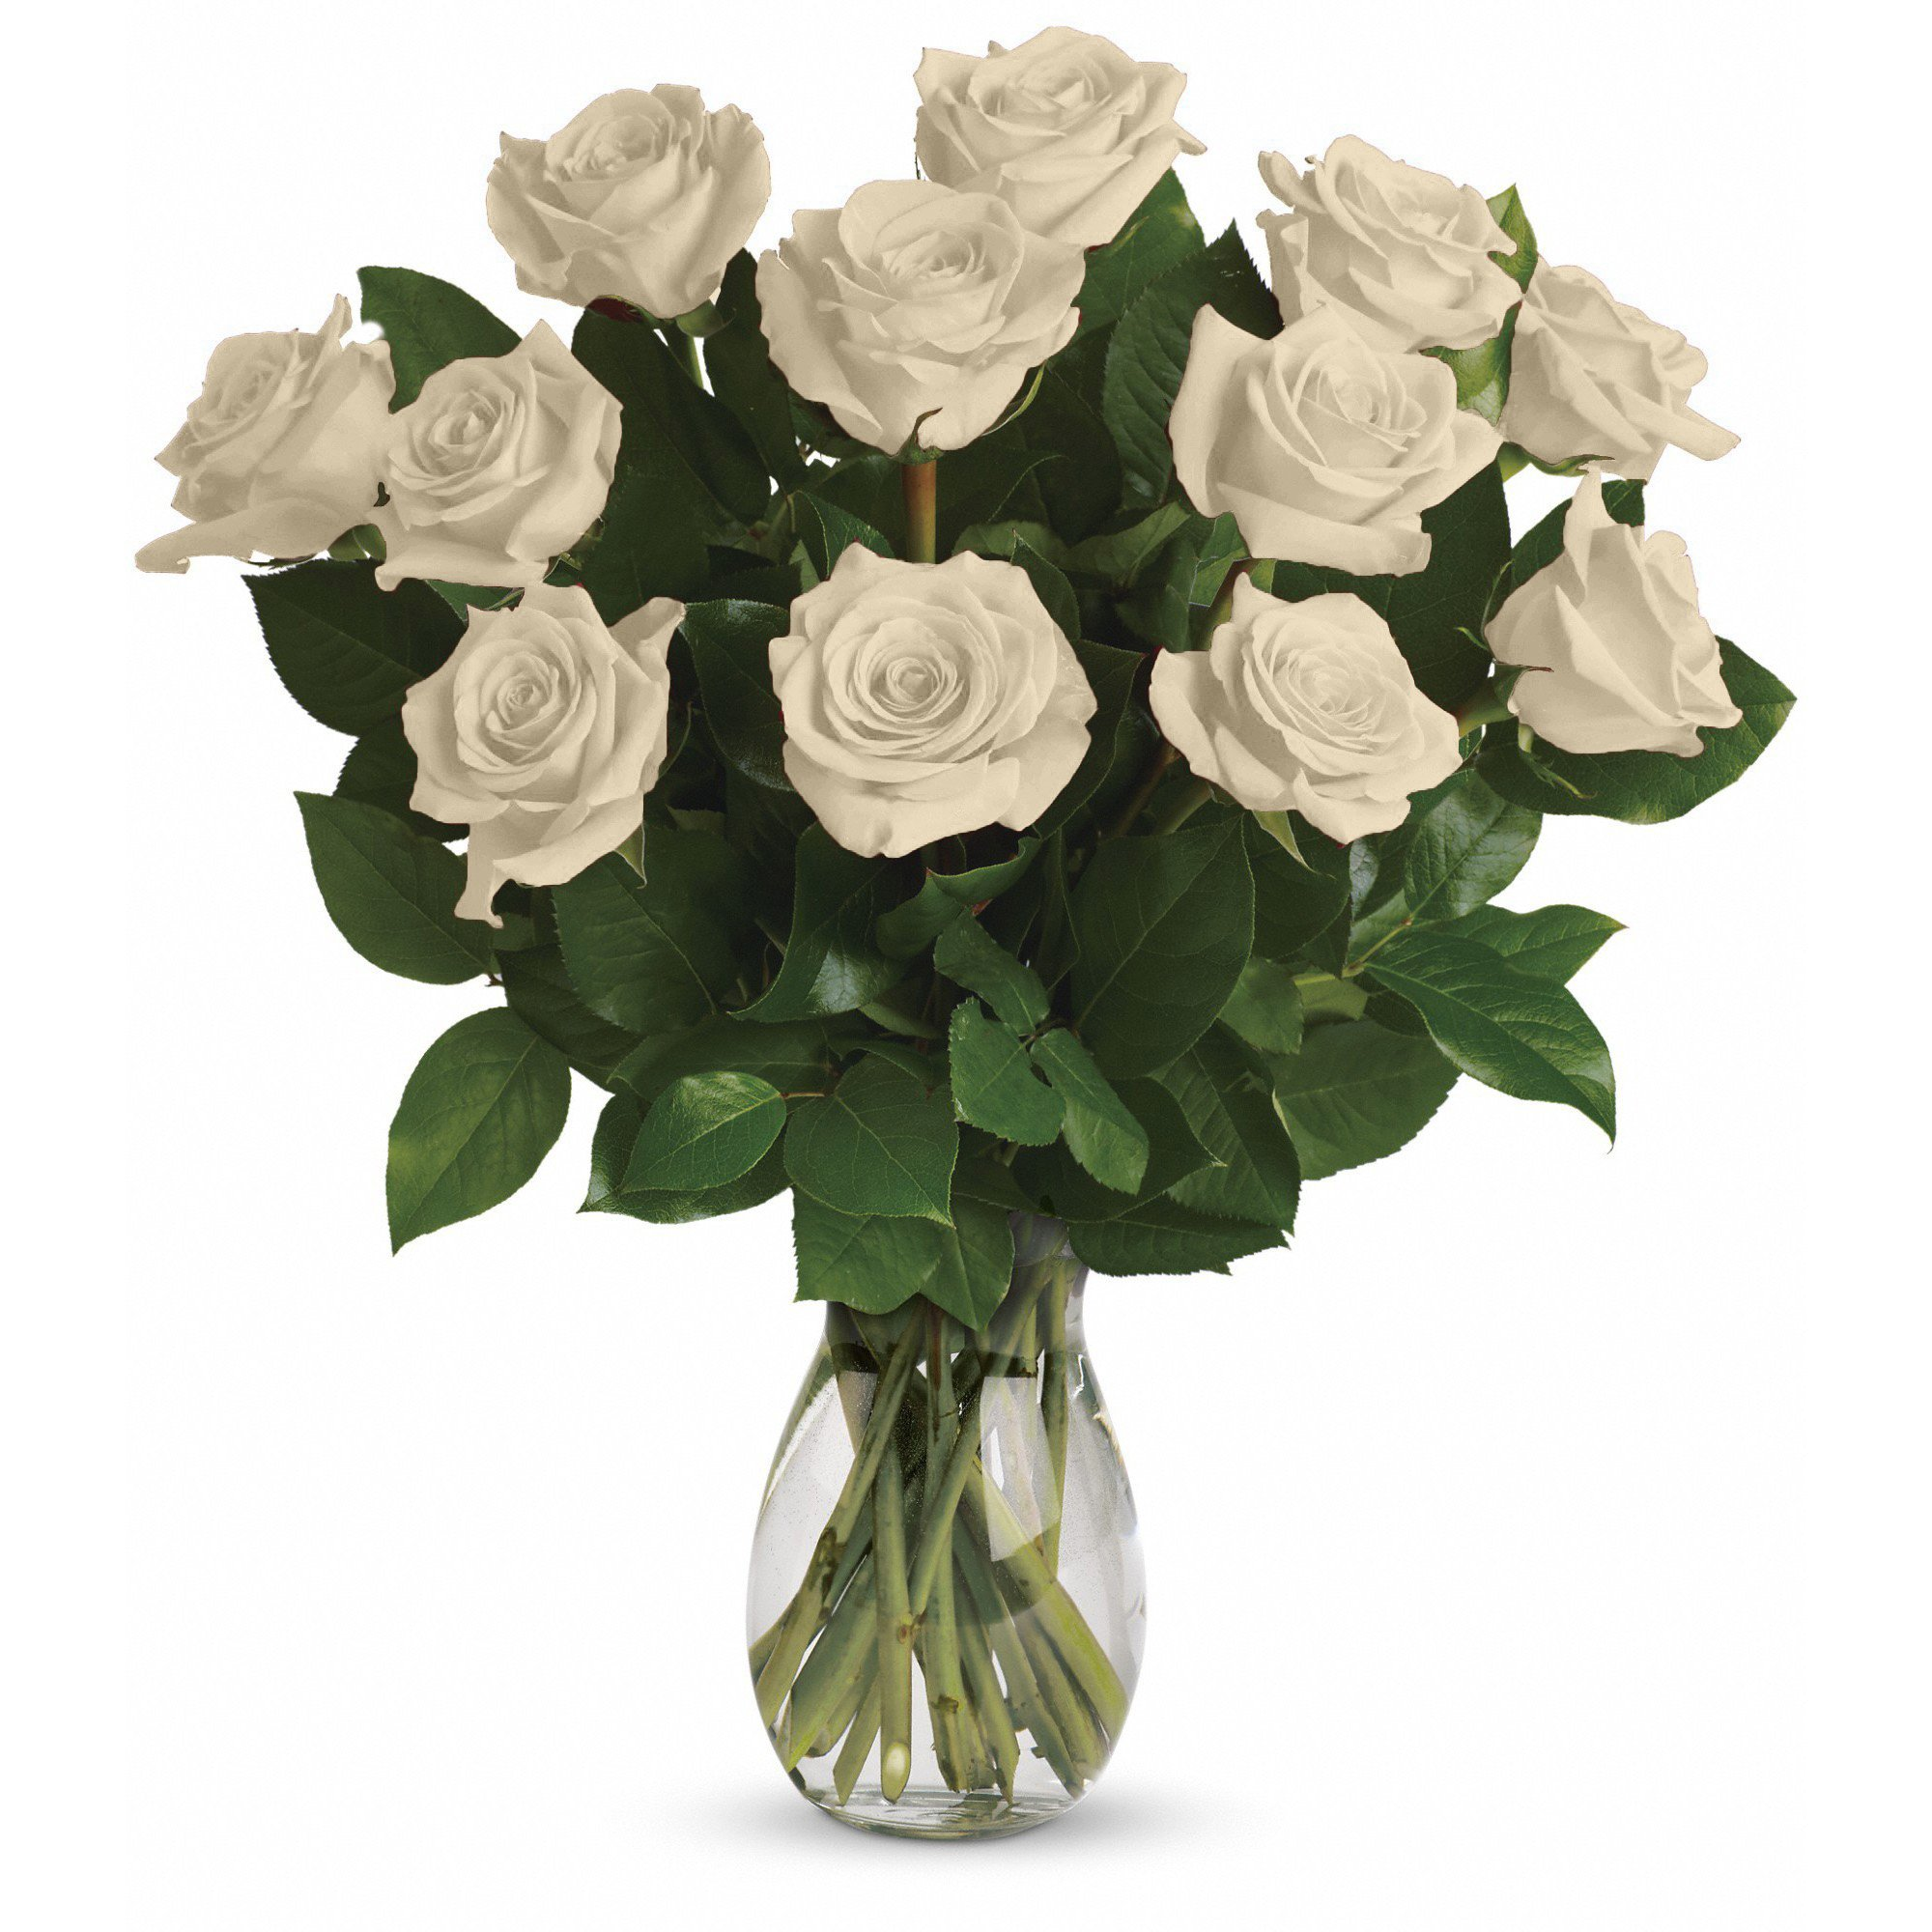 Farm Direct Rose Bouquet of 12 Fresh Cut Roses with Vase (White)